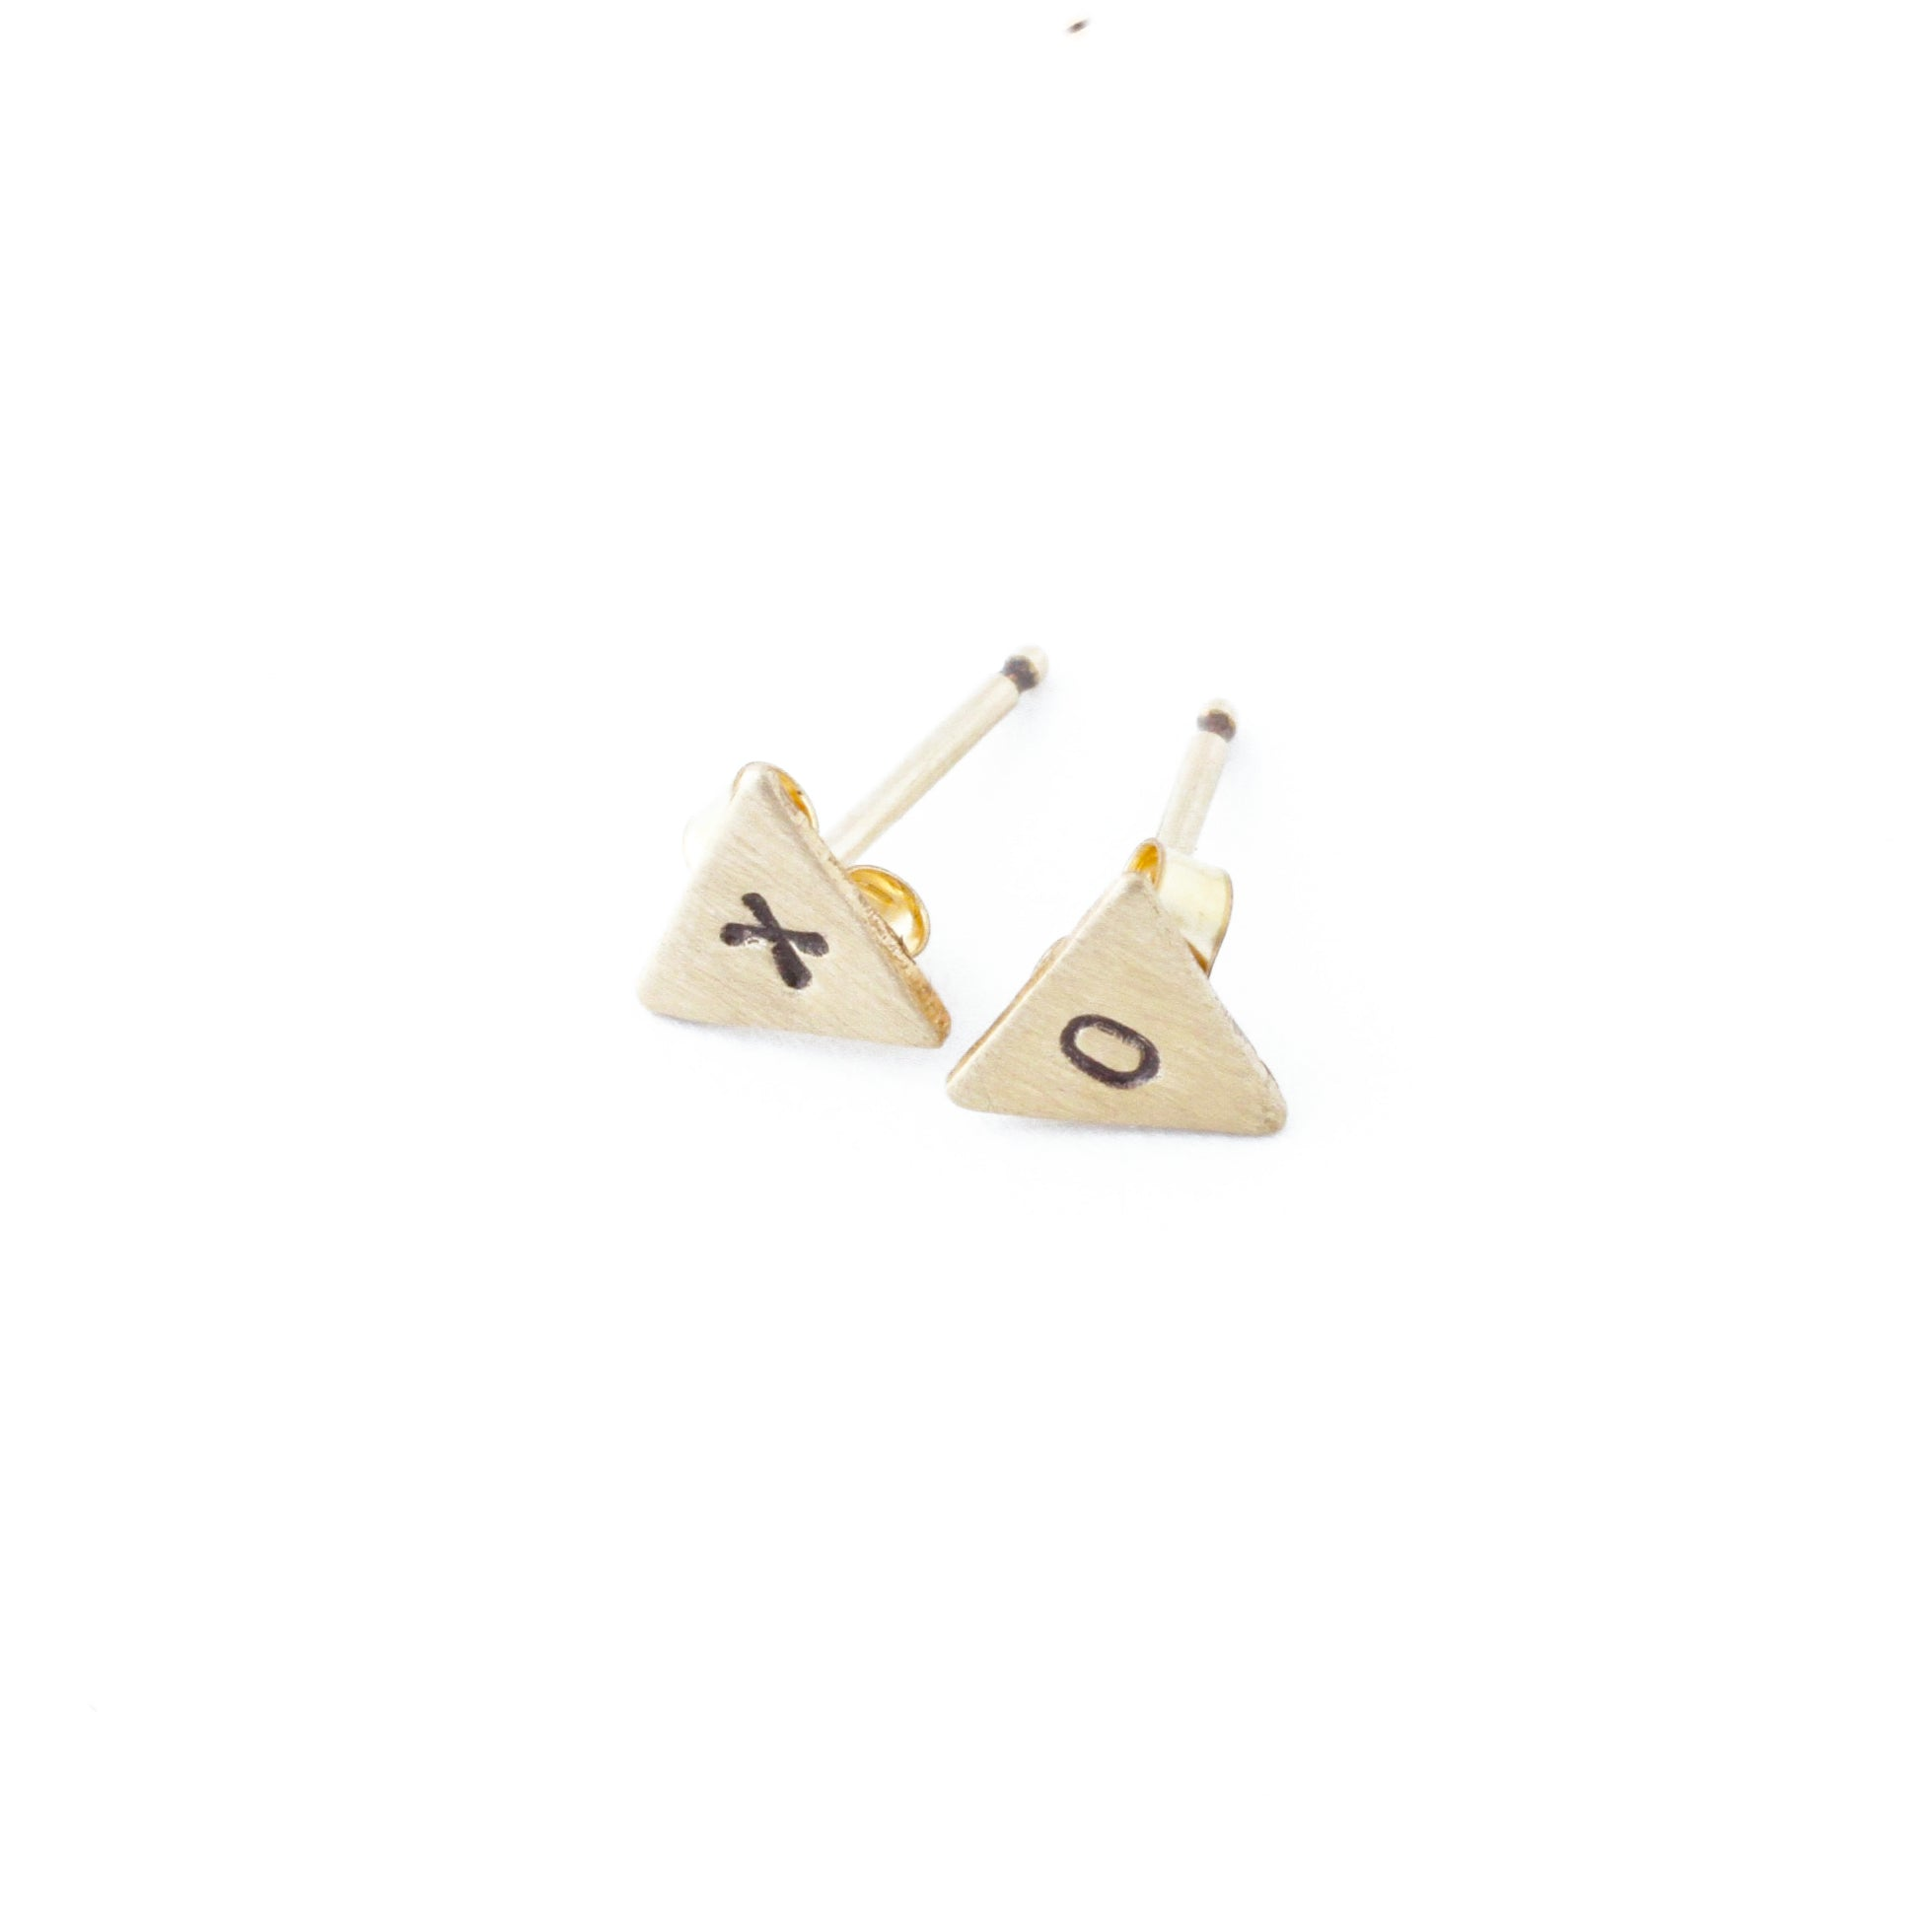 Tiny Triangle Stamped Stud Earrings (Gold-Filled)